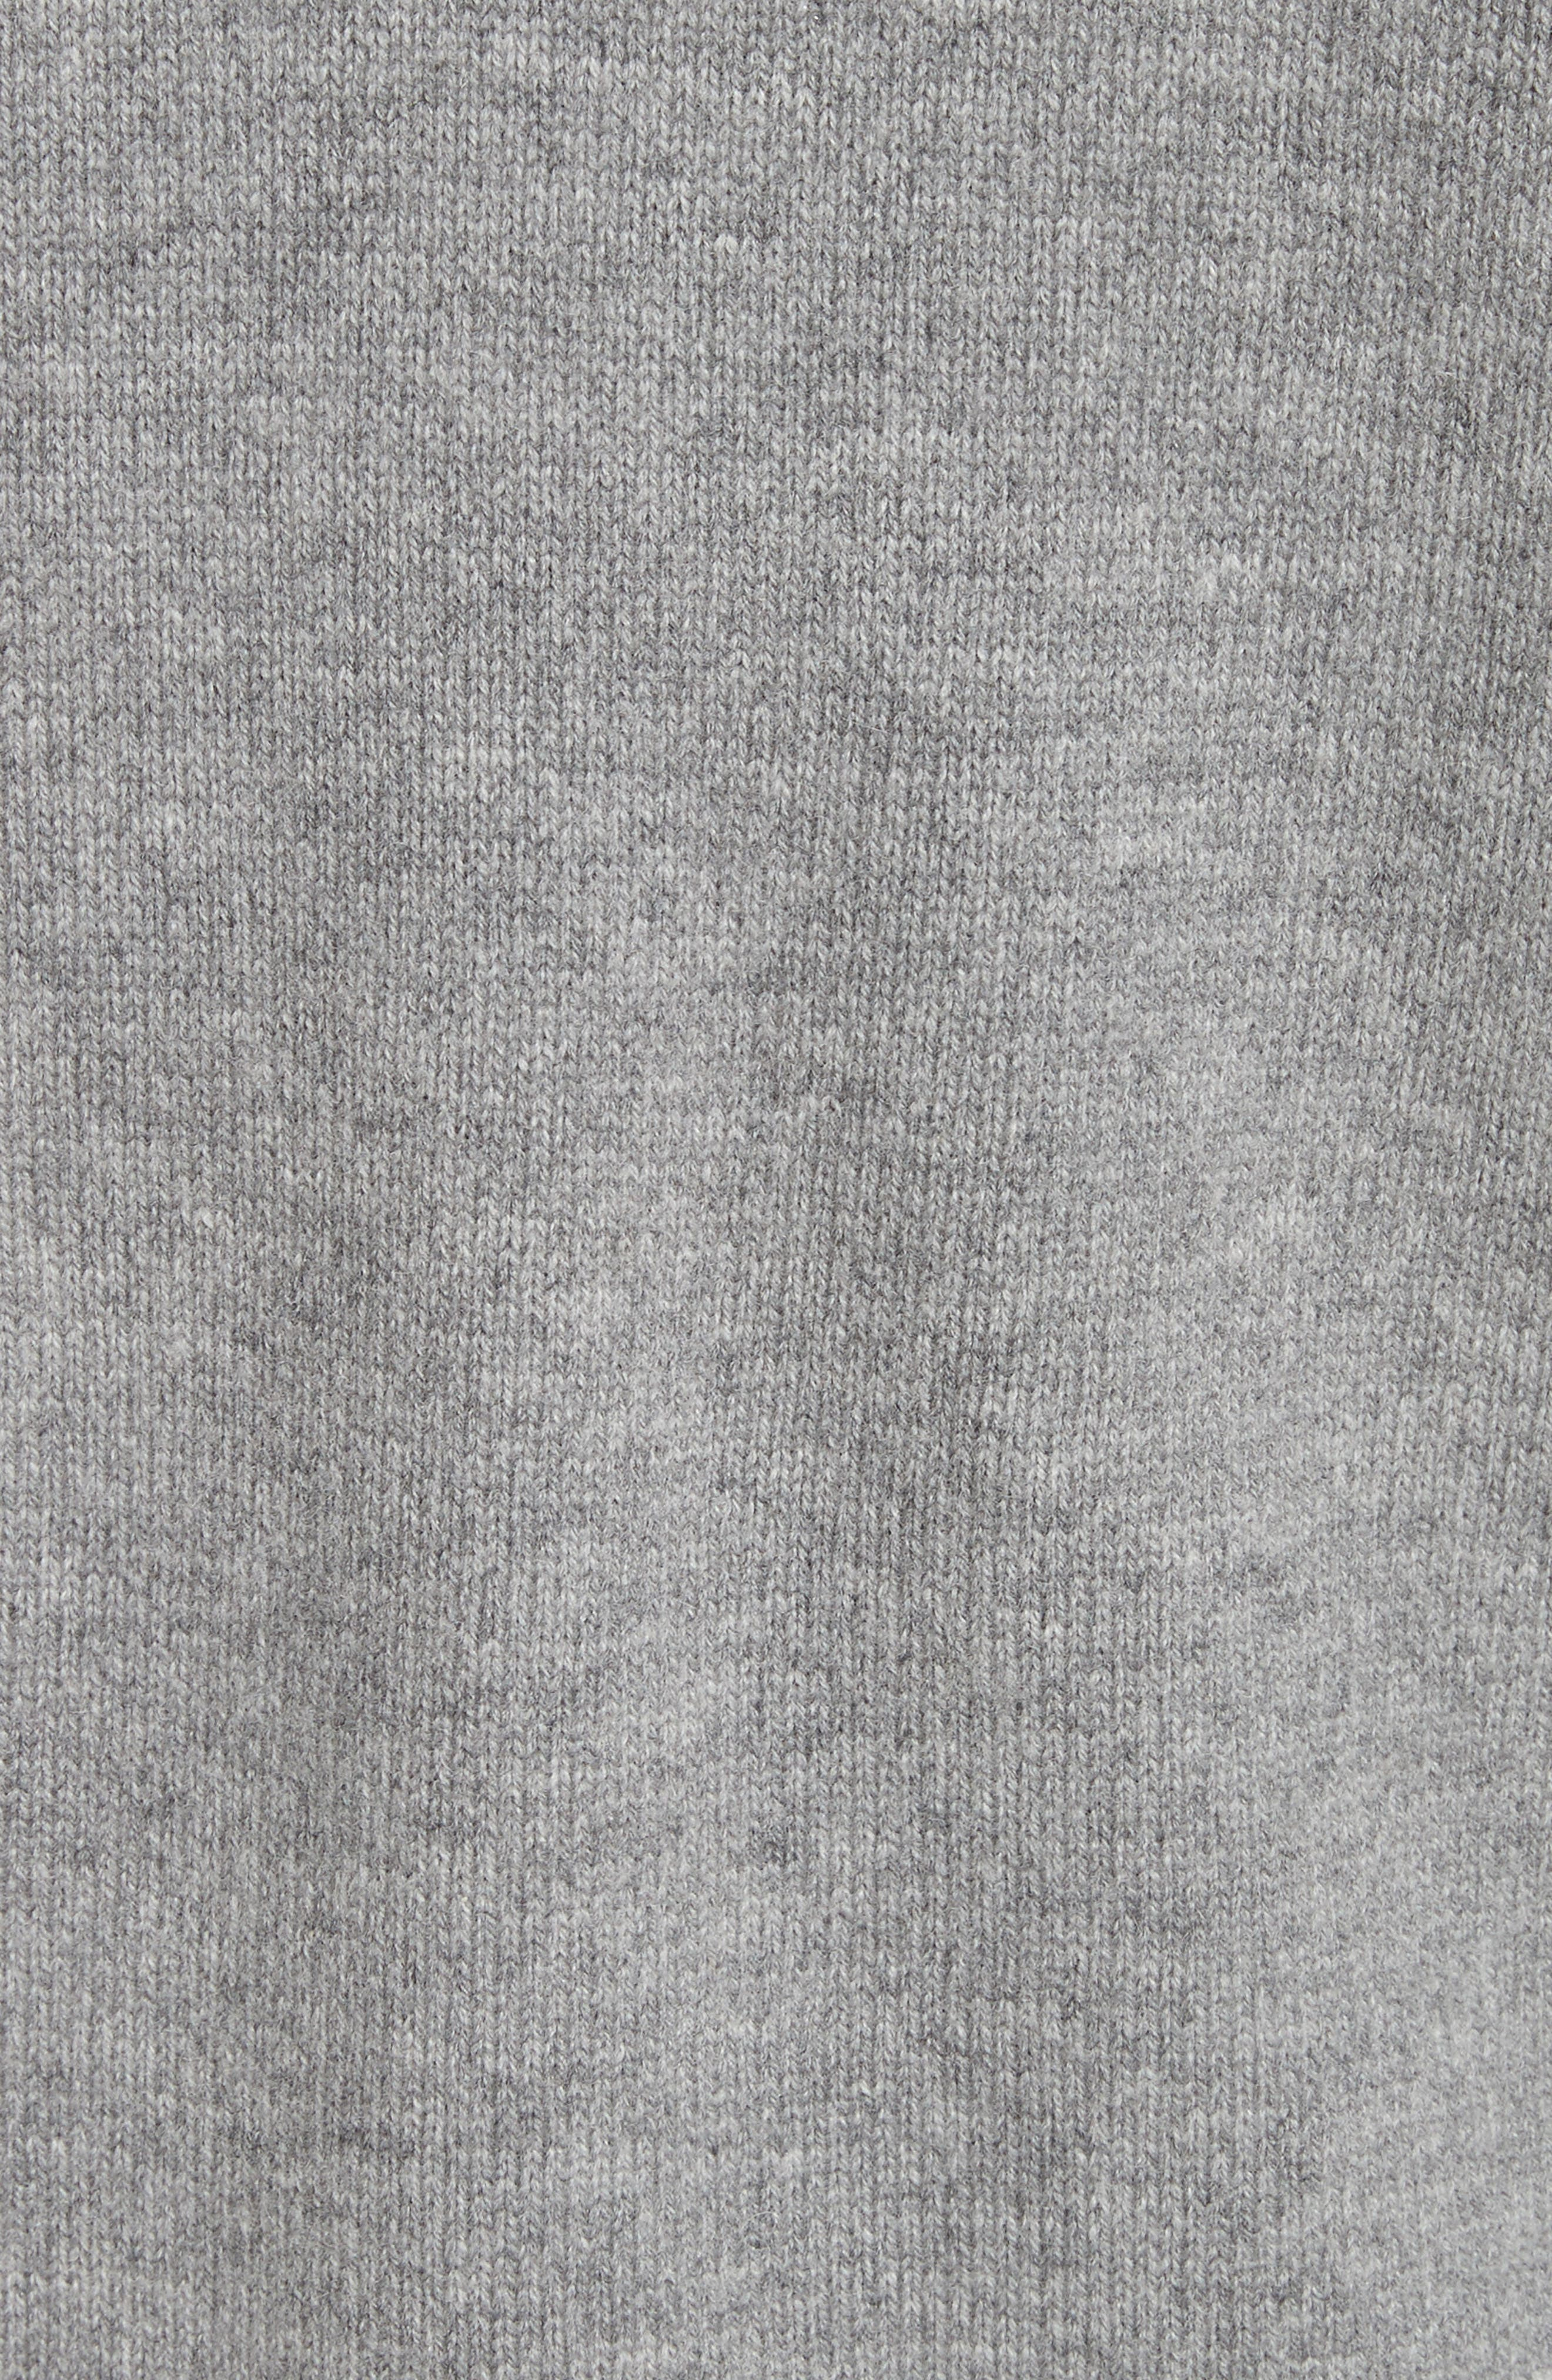 Beaded Wool & Cashmere Sweater,                             Alternate thumbnail 5, color,